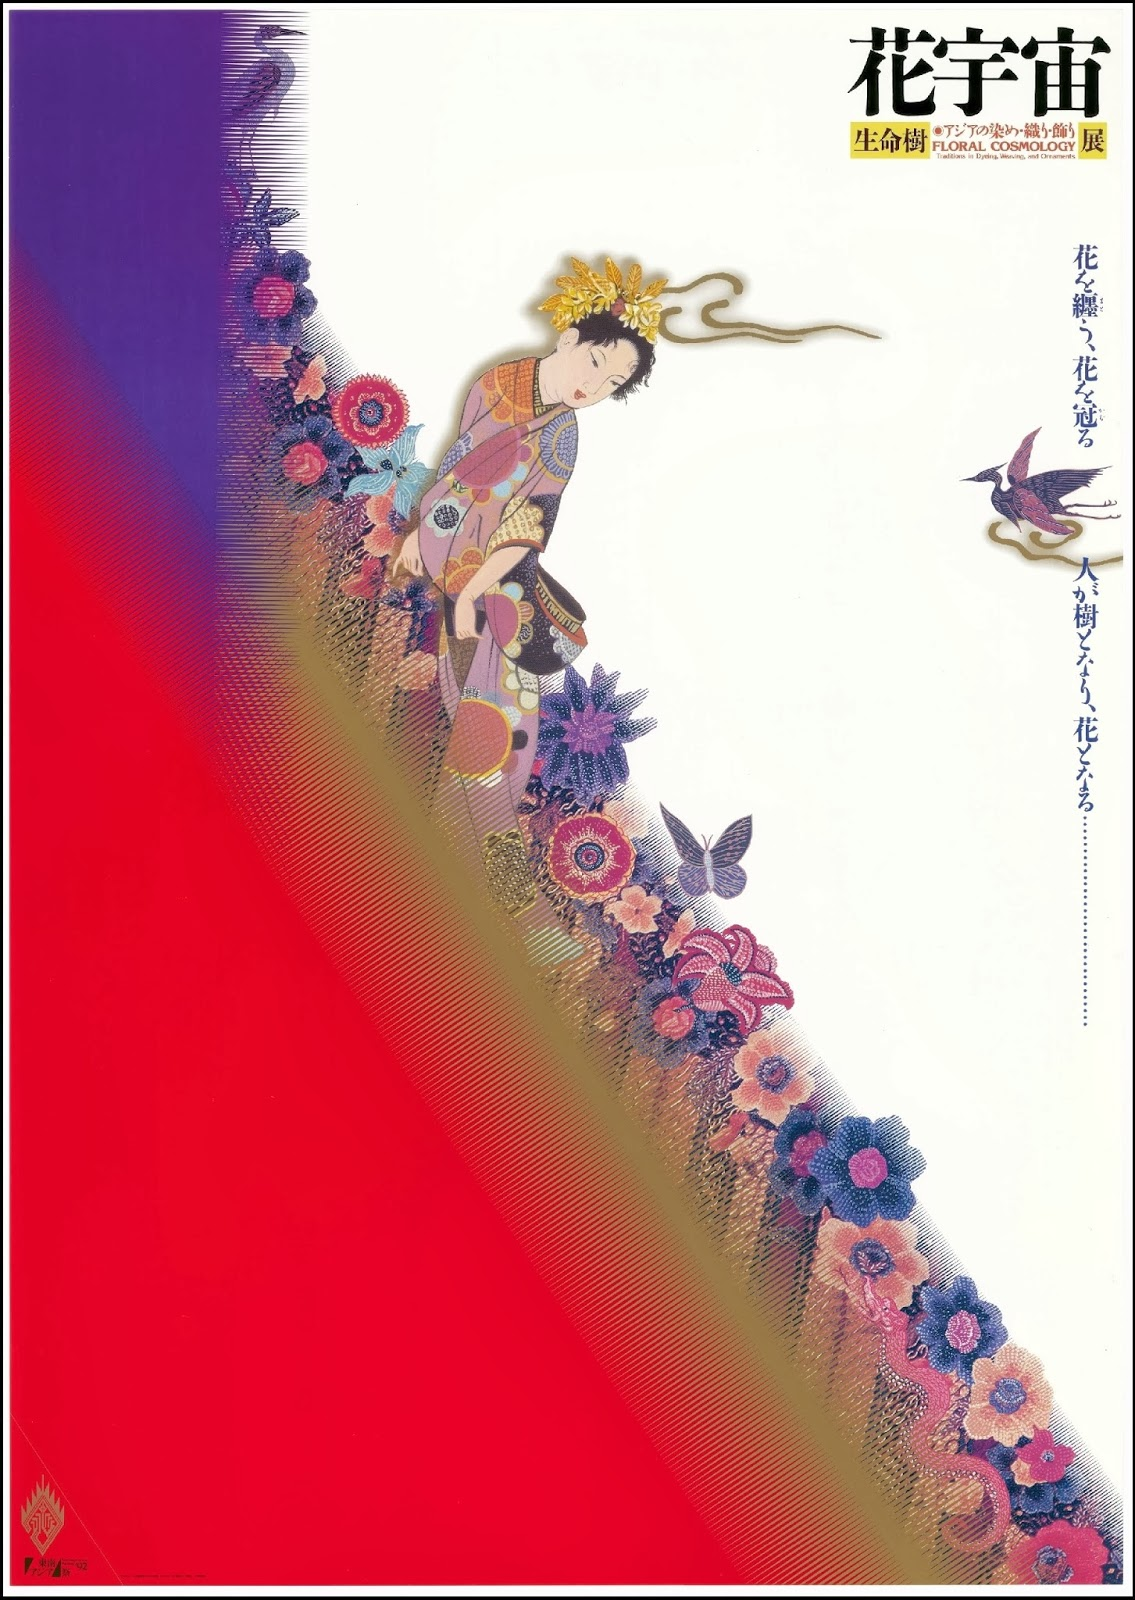 poster for 'floral cosmology' in Japan with illustrated woman among flowers on steep hillside